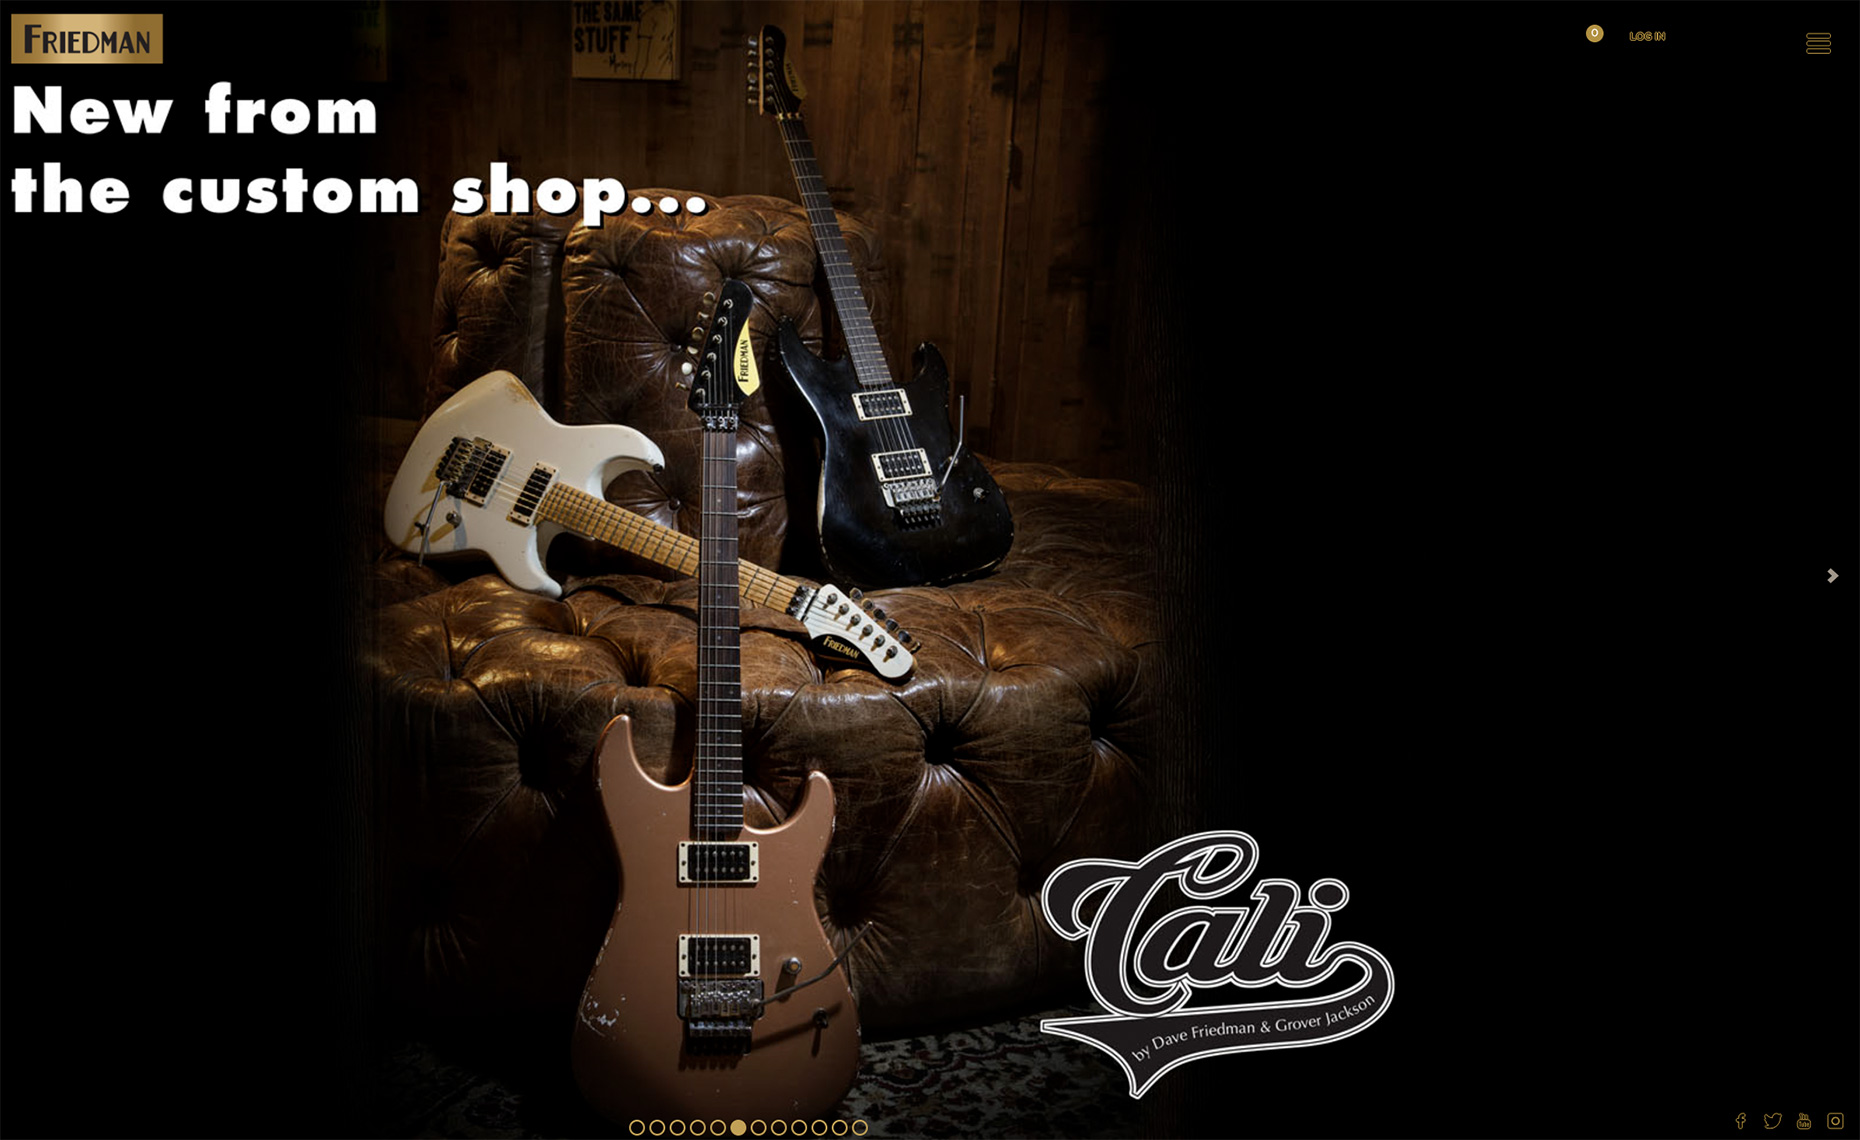 Friedman Guitars